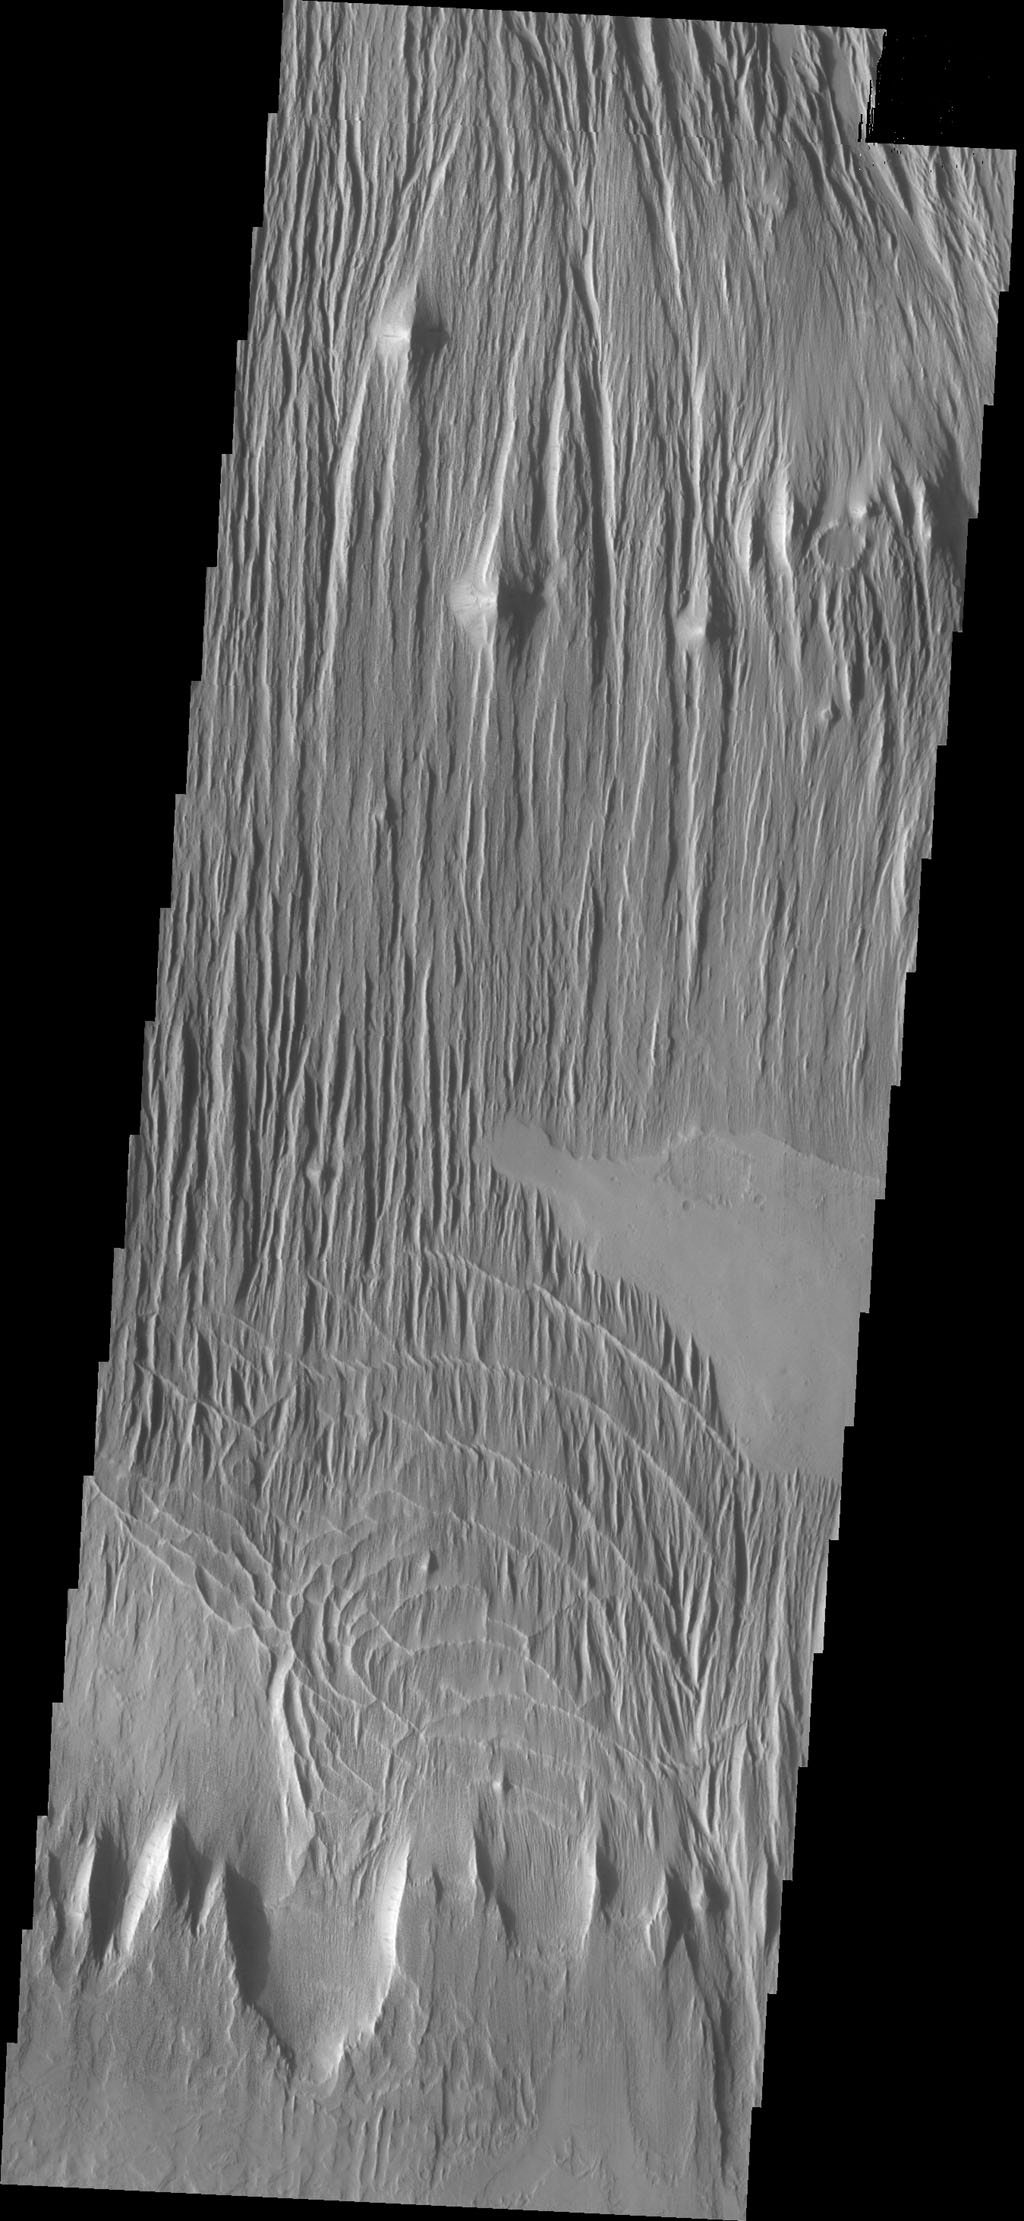 The surface in this image captured by NASA's 2001 Mars Odyssey spacecraft has been scoured by the wind, producing the linear ridges/valleys.